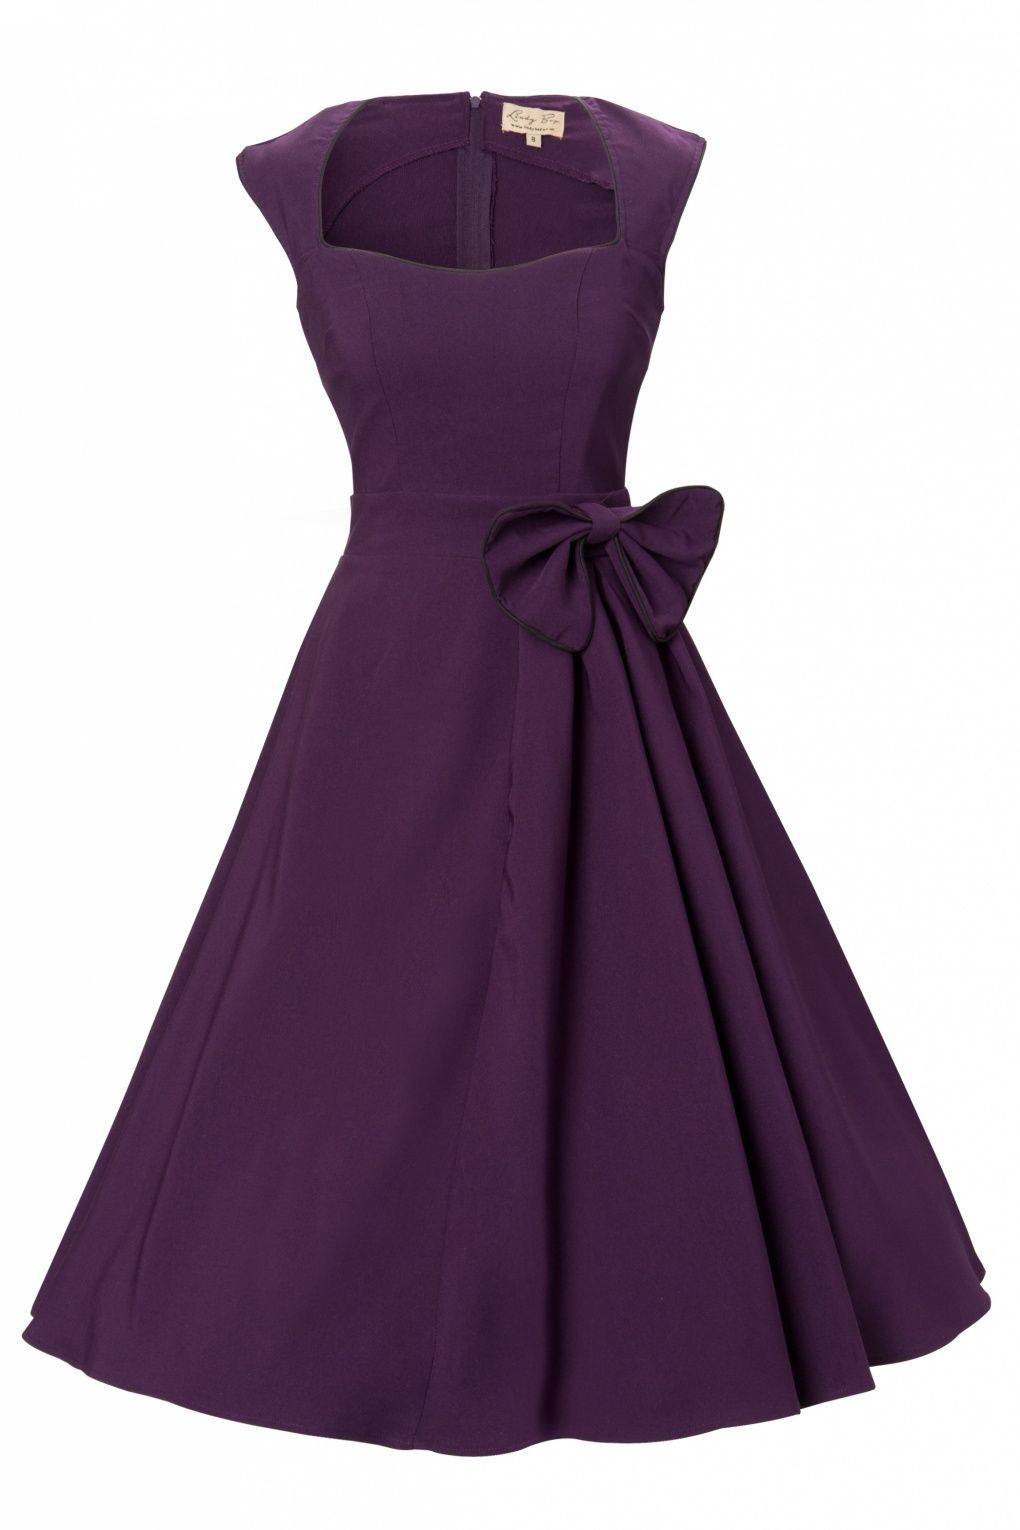 I love the cut of this dress! And it comes in the loveliest of colors! ~G   66 ac0e1fa0b9a0